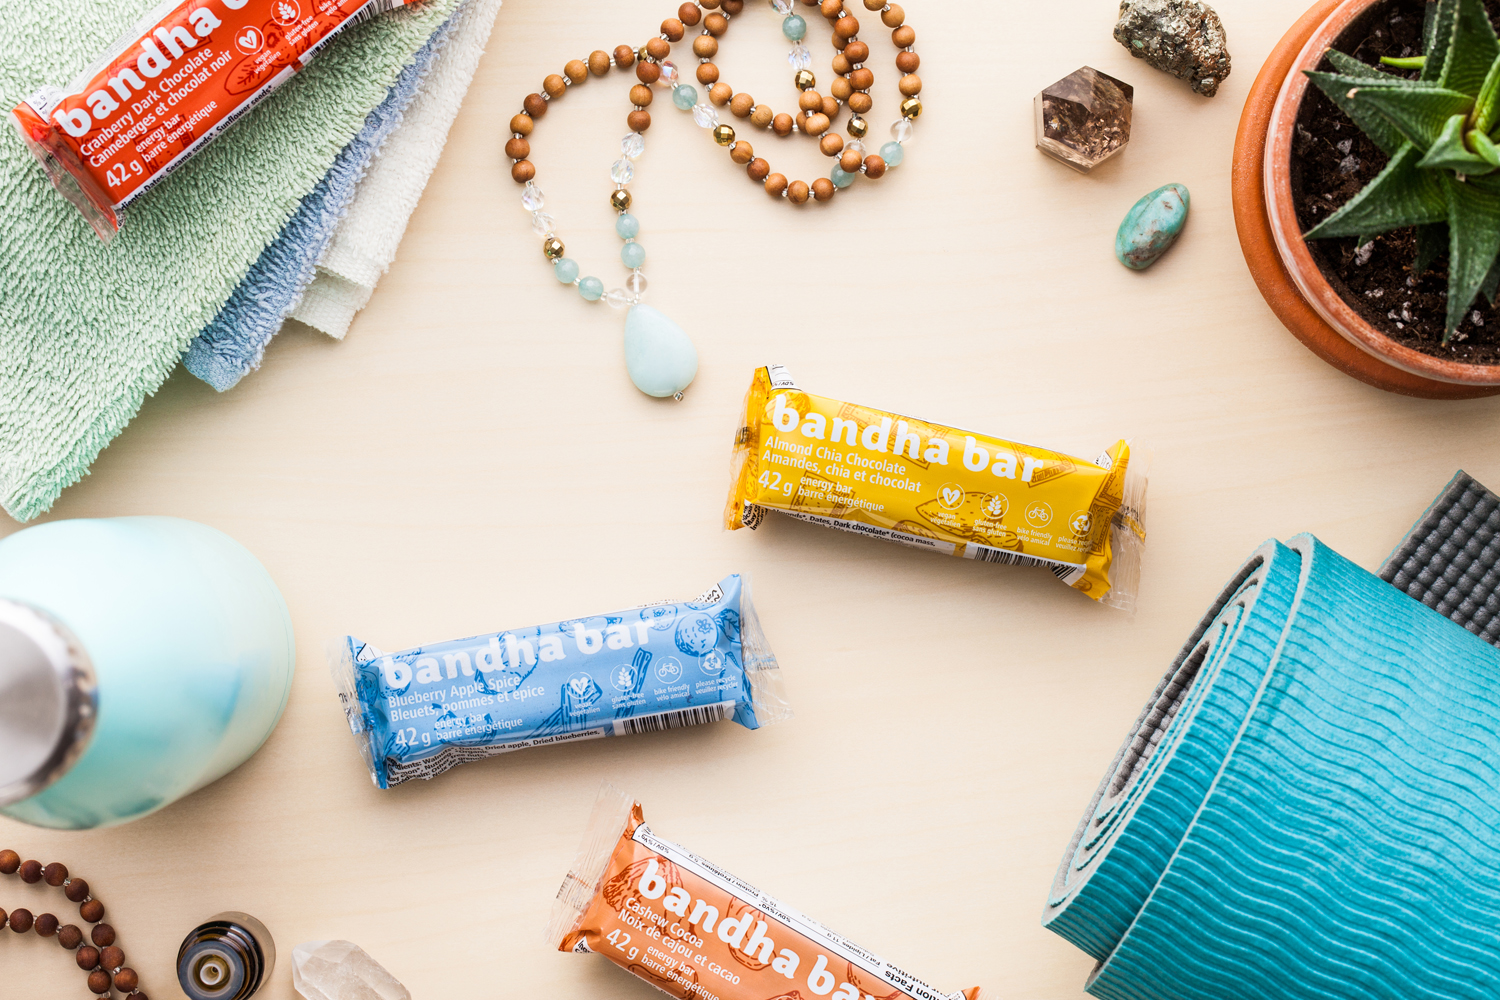 Client: Bandha Bars  Food styling:  Kathy Jollimore   Photography: Kelly Neil